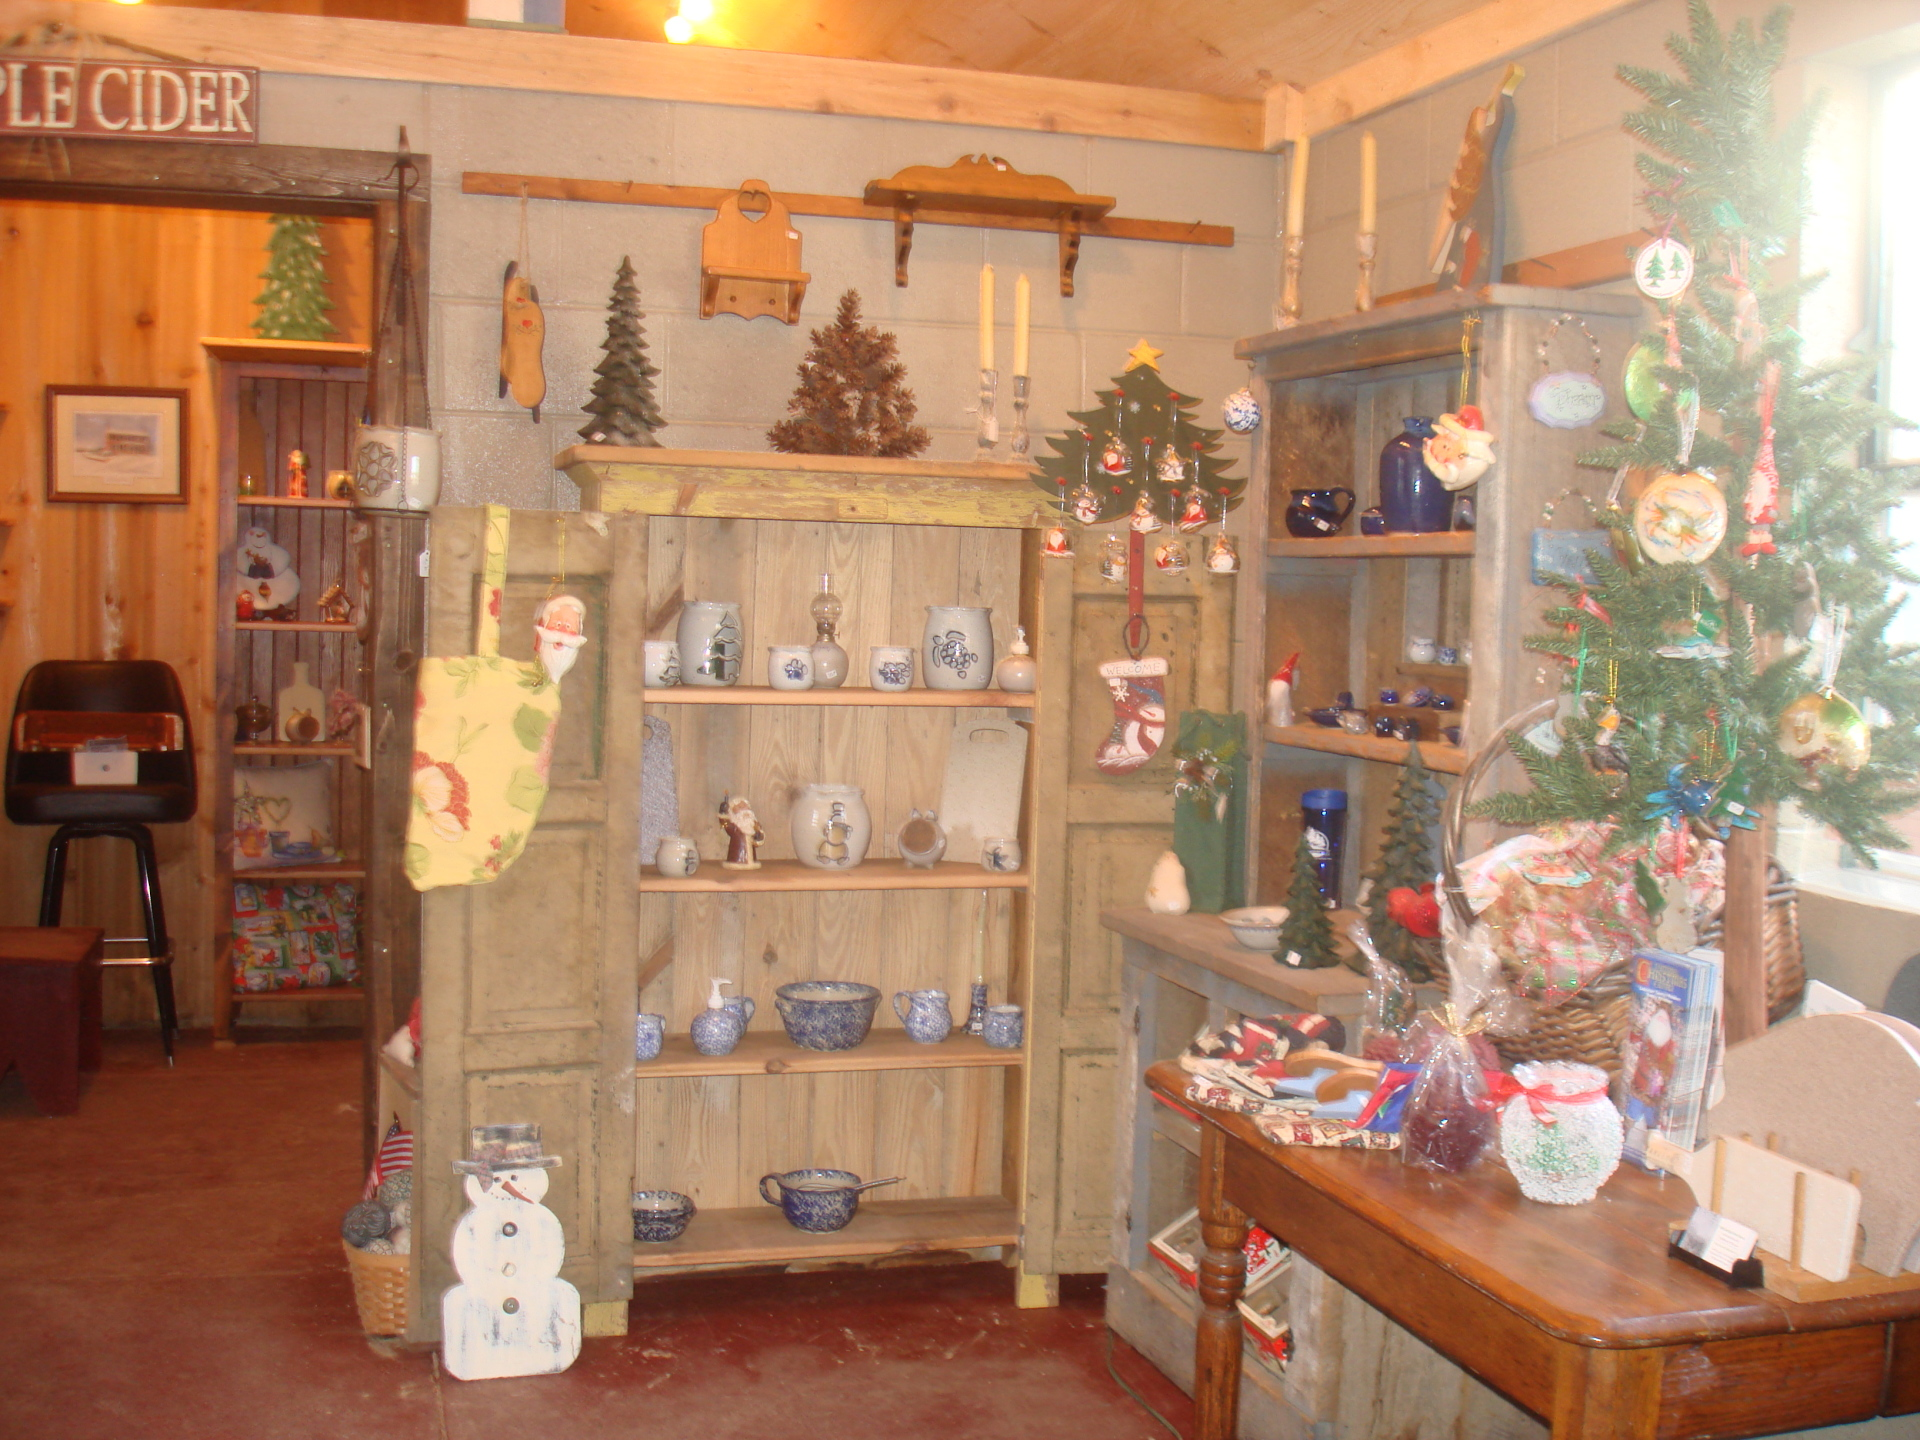 Shelves filled with handmade items